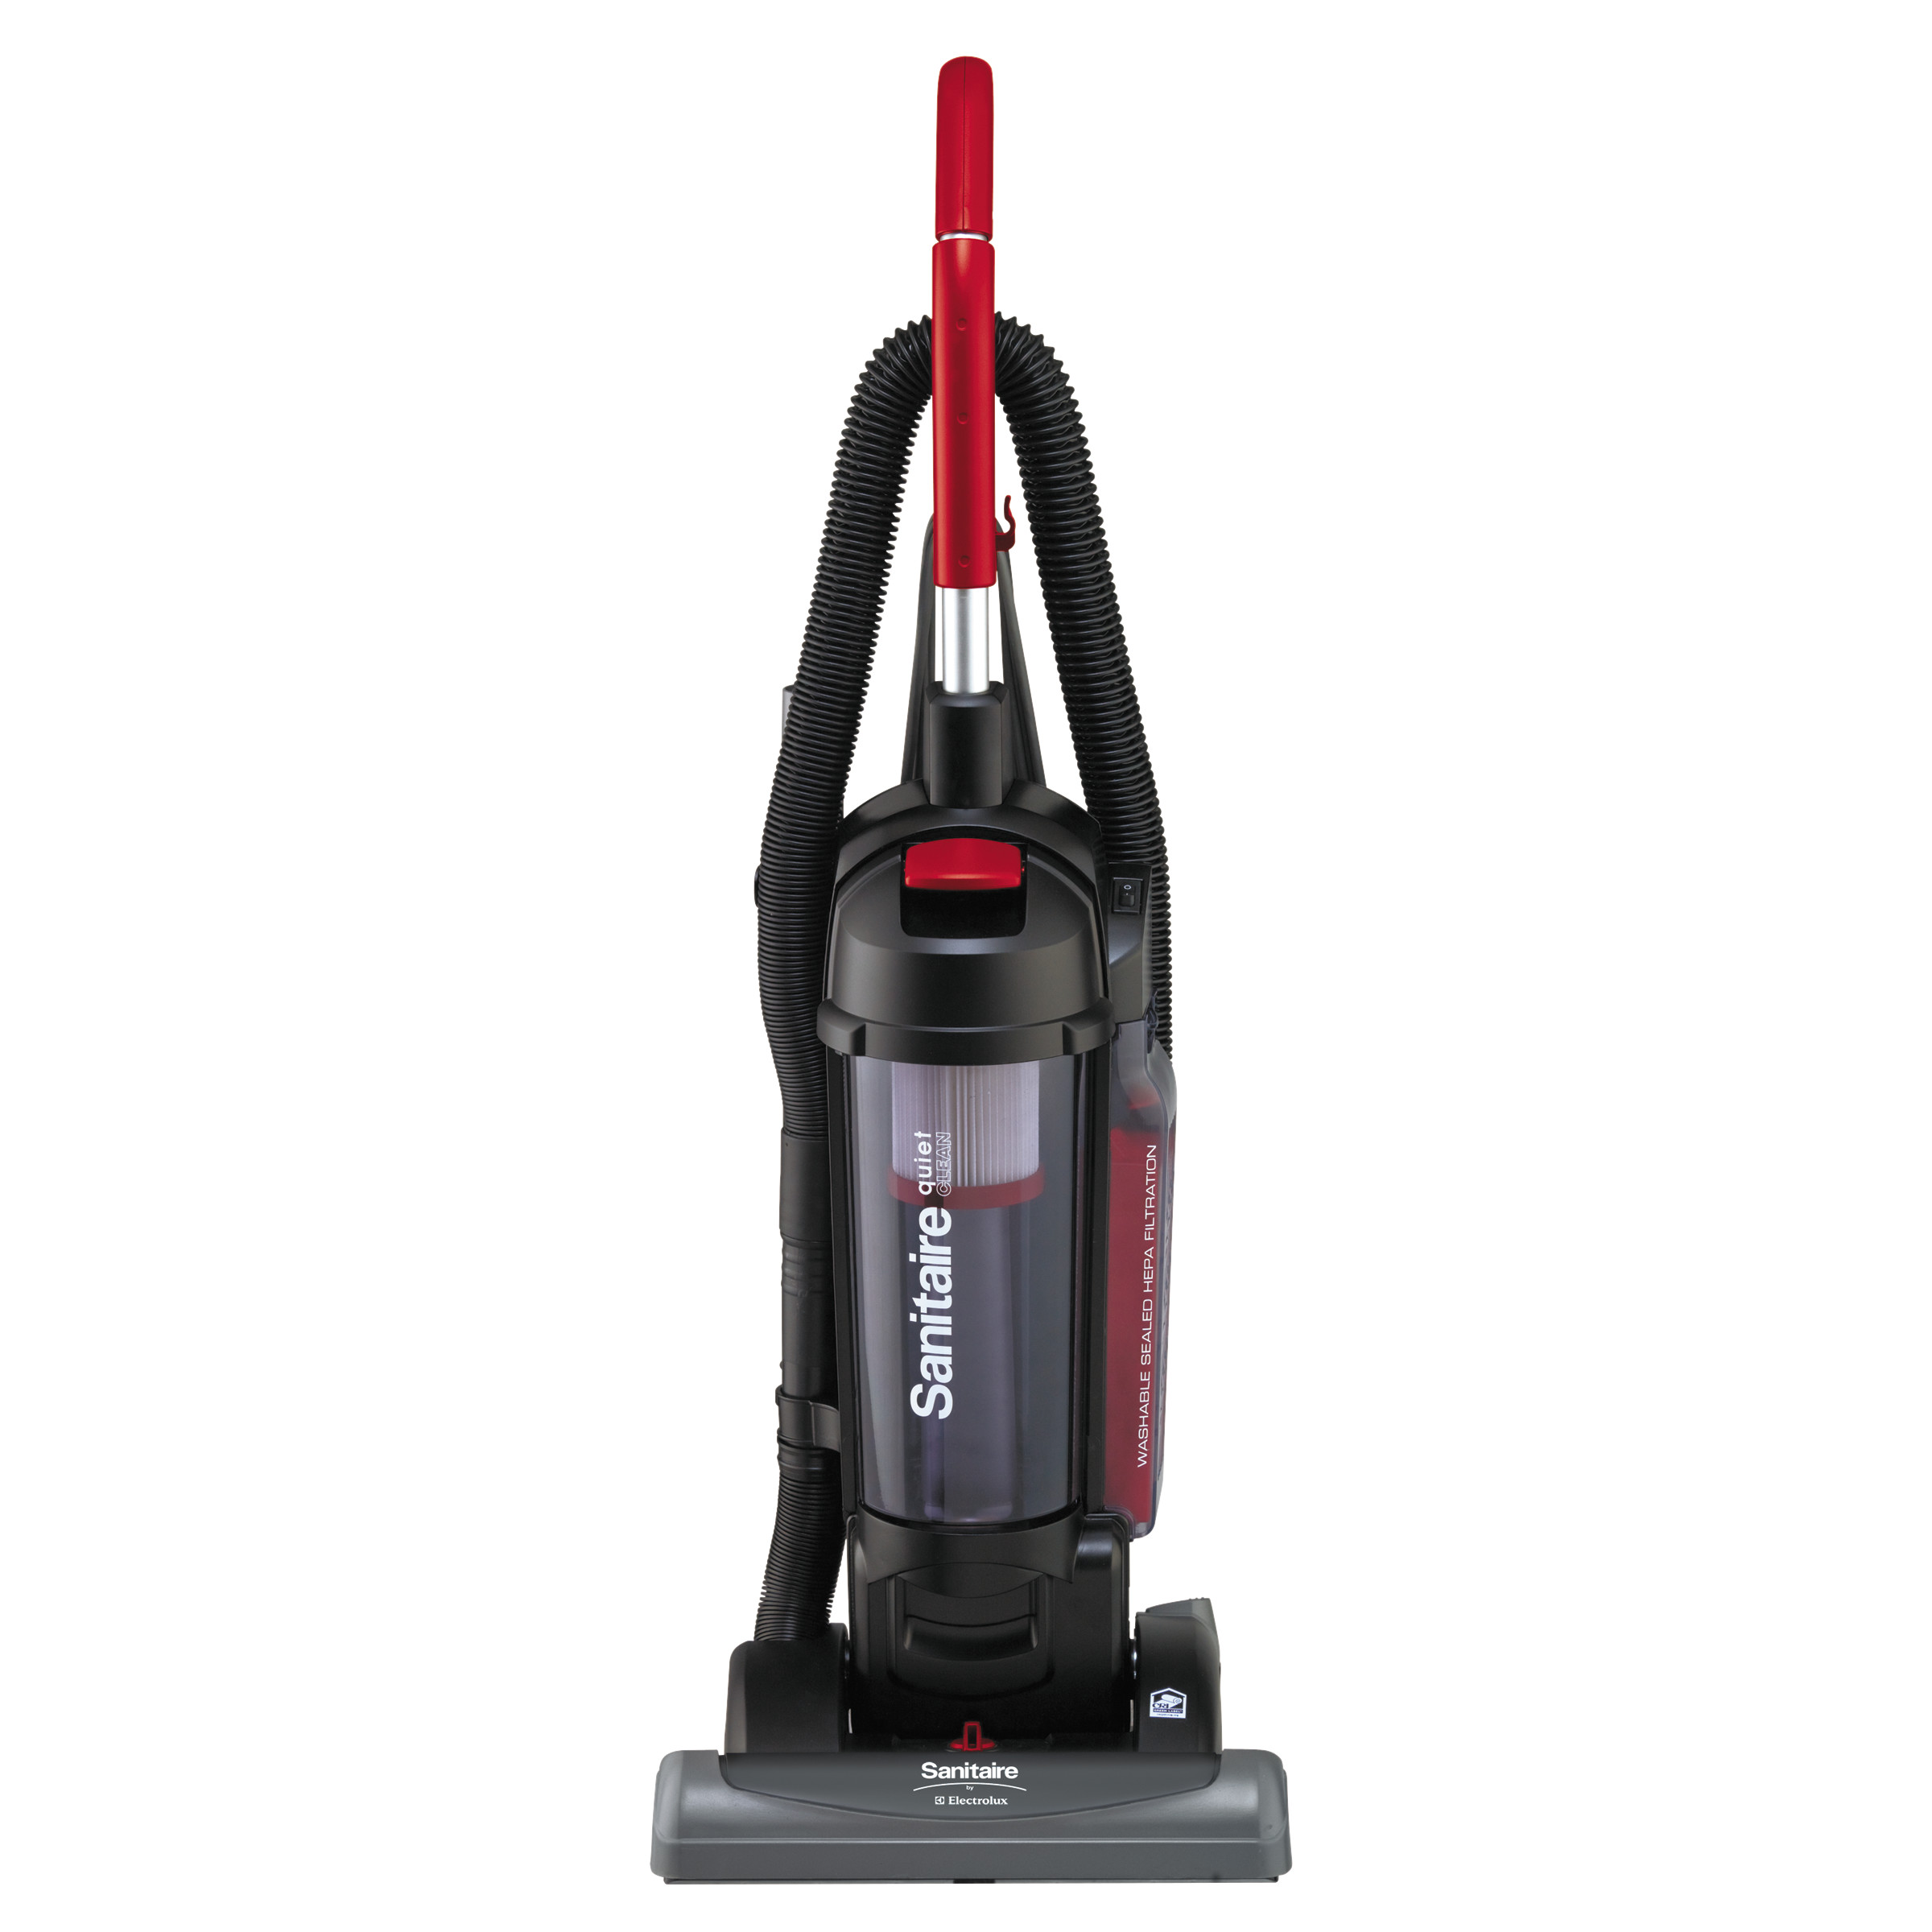 Sanitaire Bagless/Cyclonic Vacuum with Sealed HEPA Filtration, Red